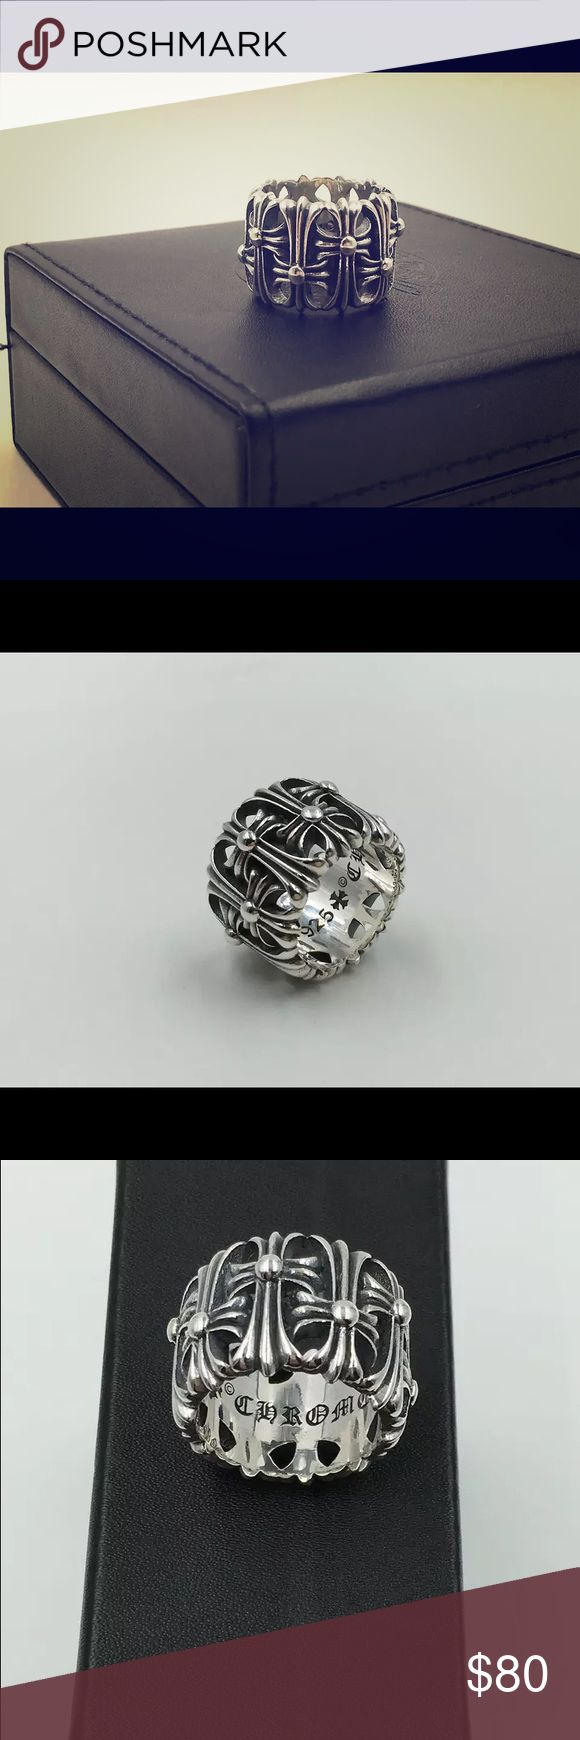 chrome hearts rings new without tags. Chrome Hearts Jewelry Rings